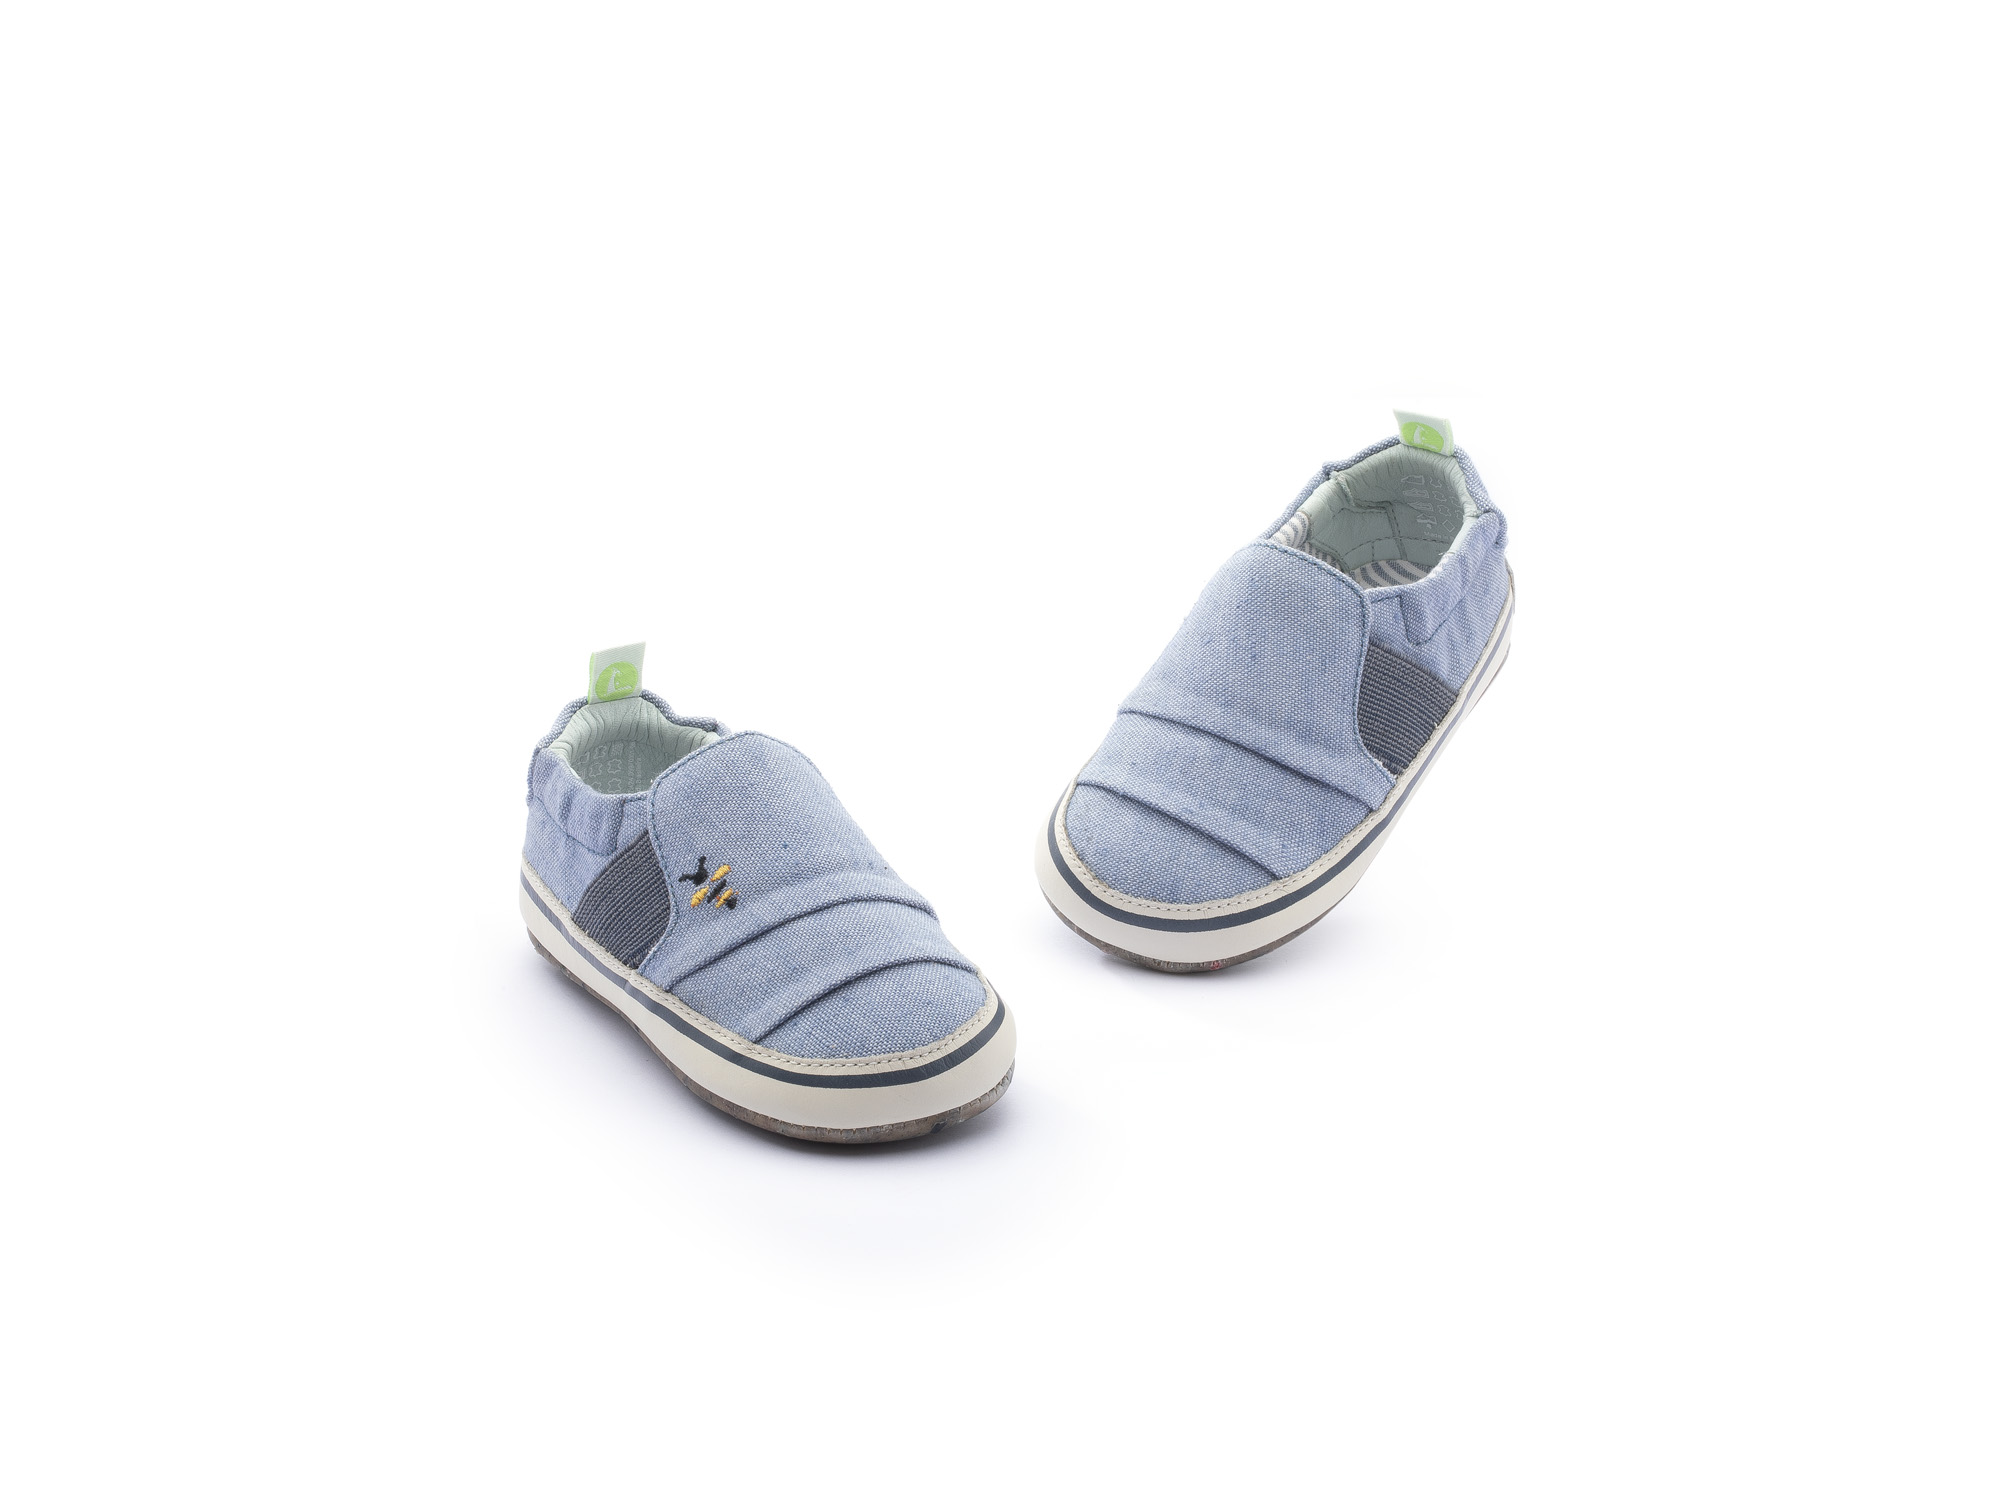 Sneaker Casual Slippy Light Blue Canvas Beeswax/ Tapioca Baby 0 à 2 anos - 3